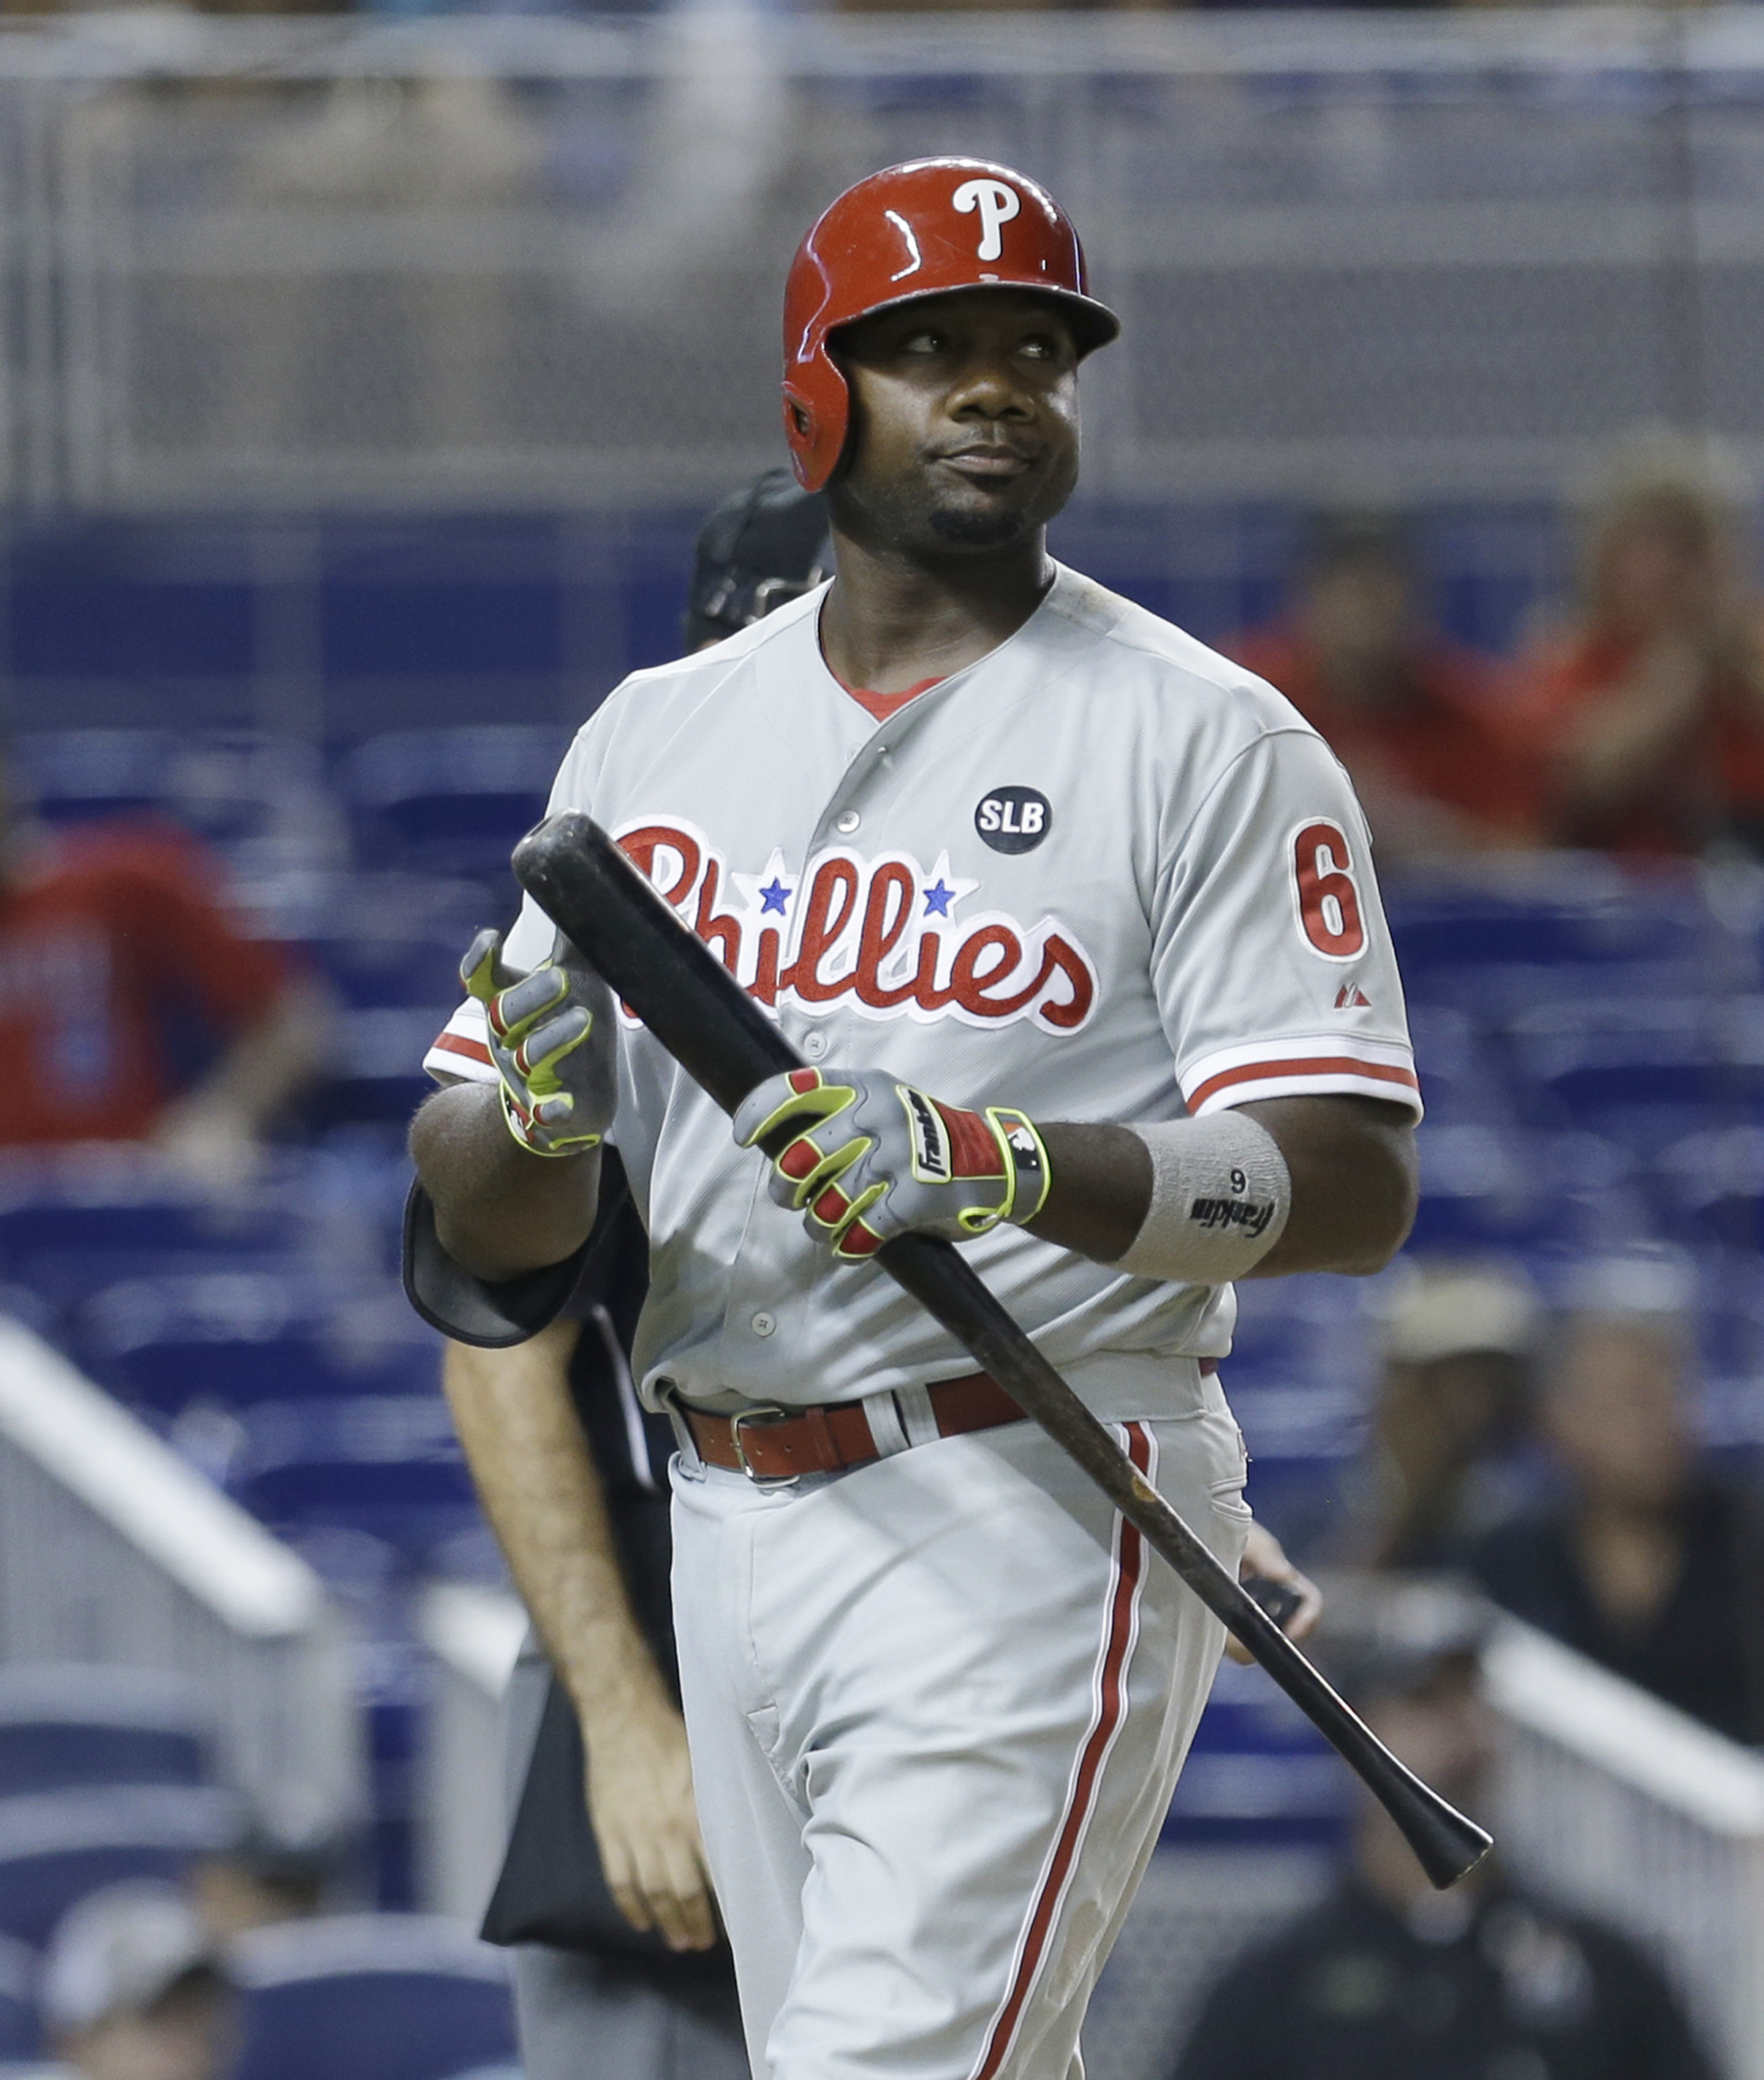 FILE - In this Saturday, Aug. 22, 2015 file photo, Philadelphia Phillies pinch hitter Ryan Howard (6) heads to the dugout after striking out during a baseball game against the Miami Marlins in Miami. The Phillies have declined their contract option on lon